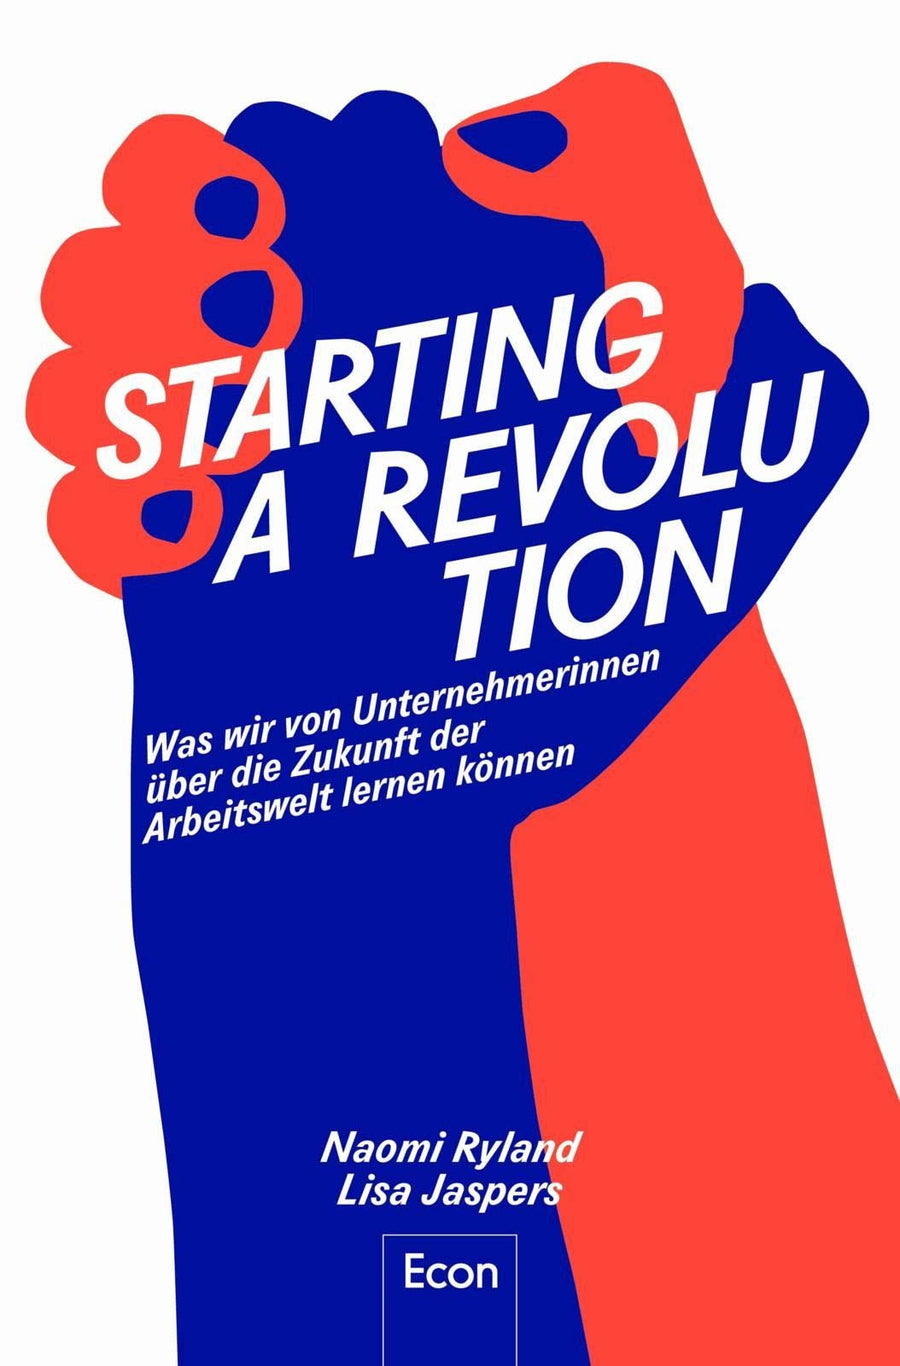 Starting a Revolution <br/> The Book (German version)